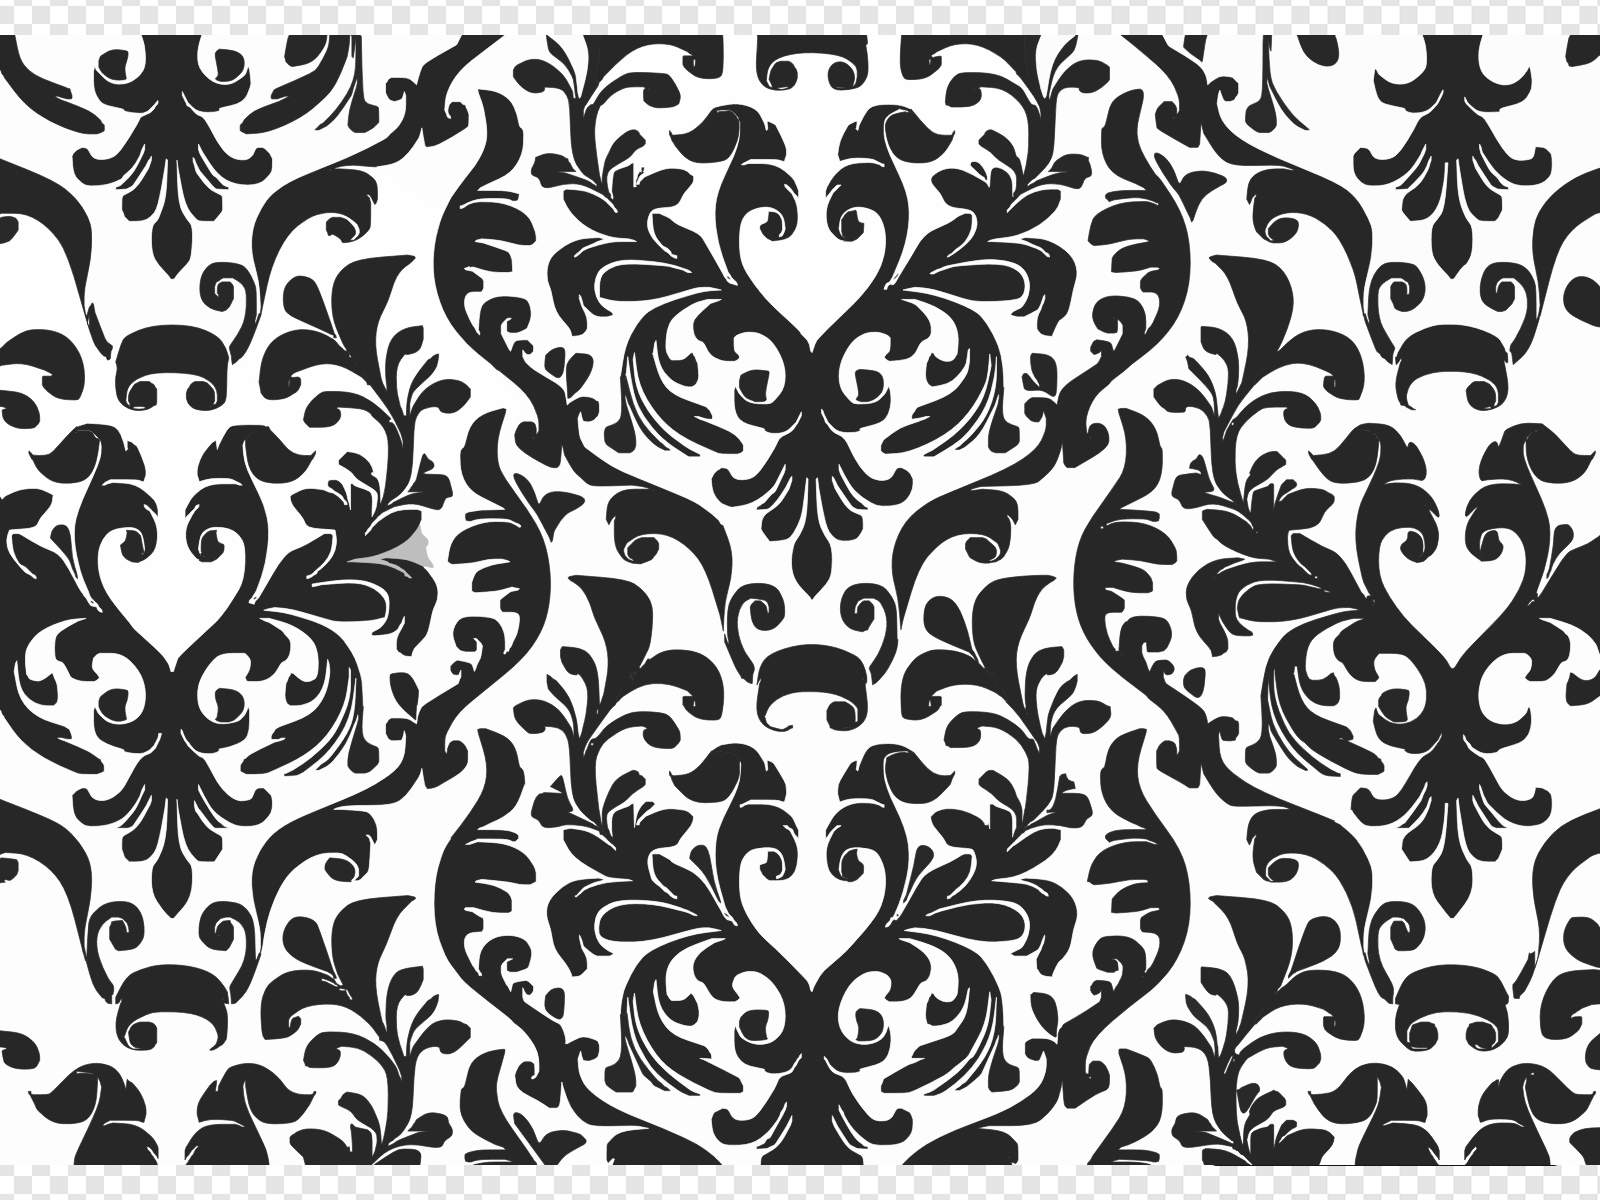 Damask Black And White Wallpaper Clip art, Icon and SVG.